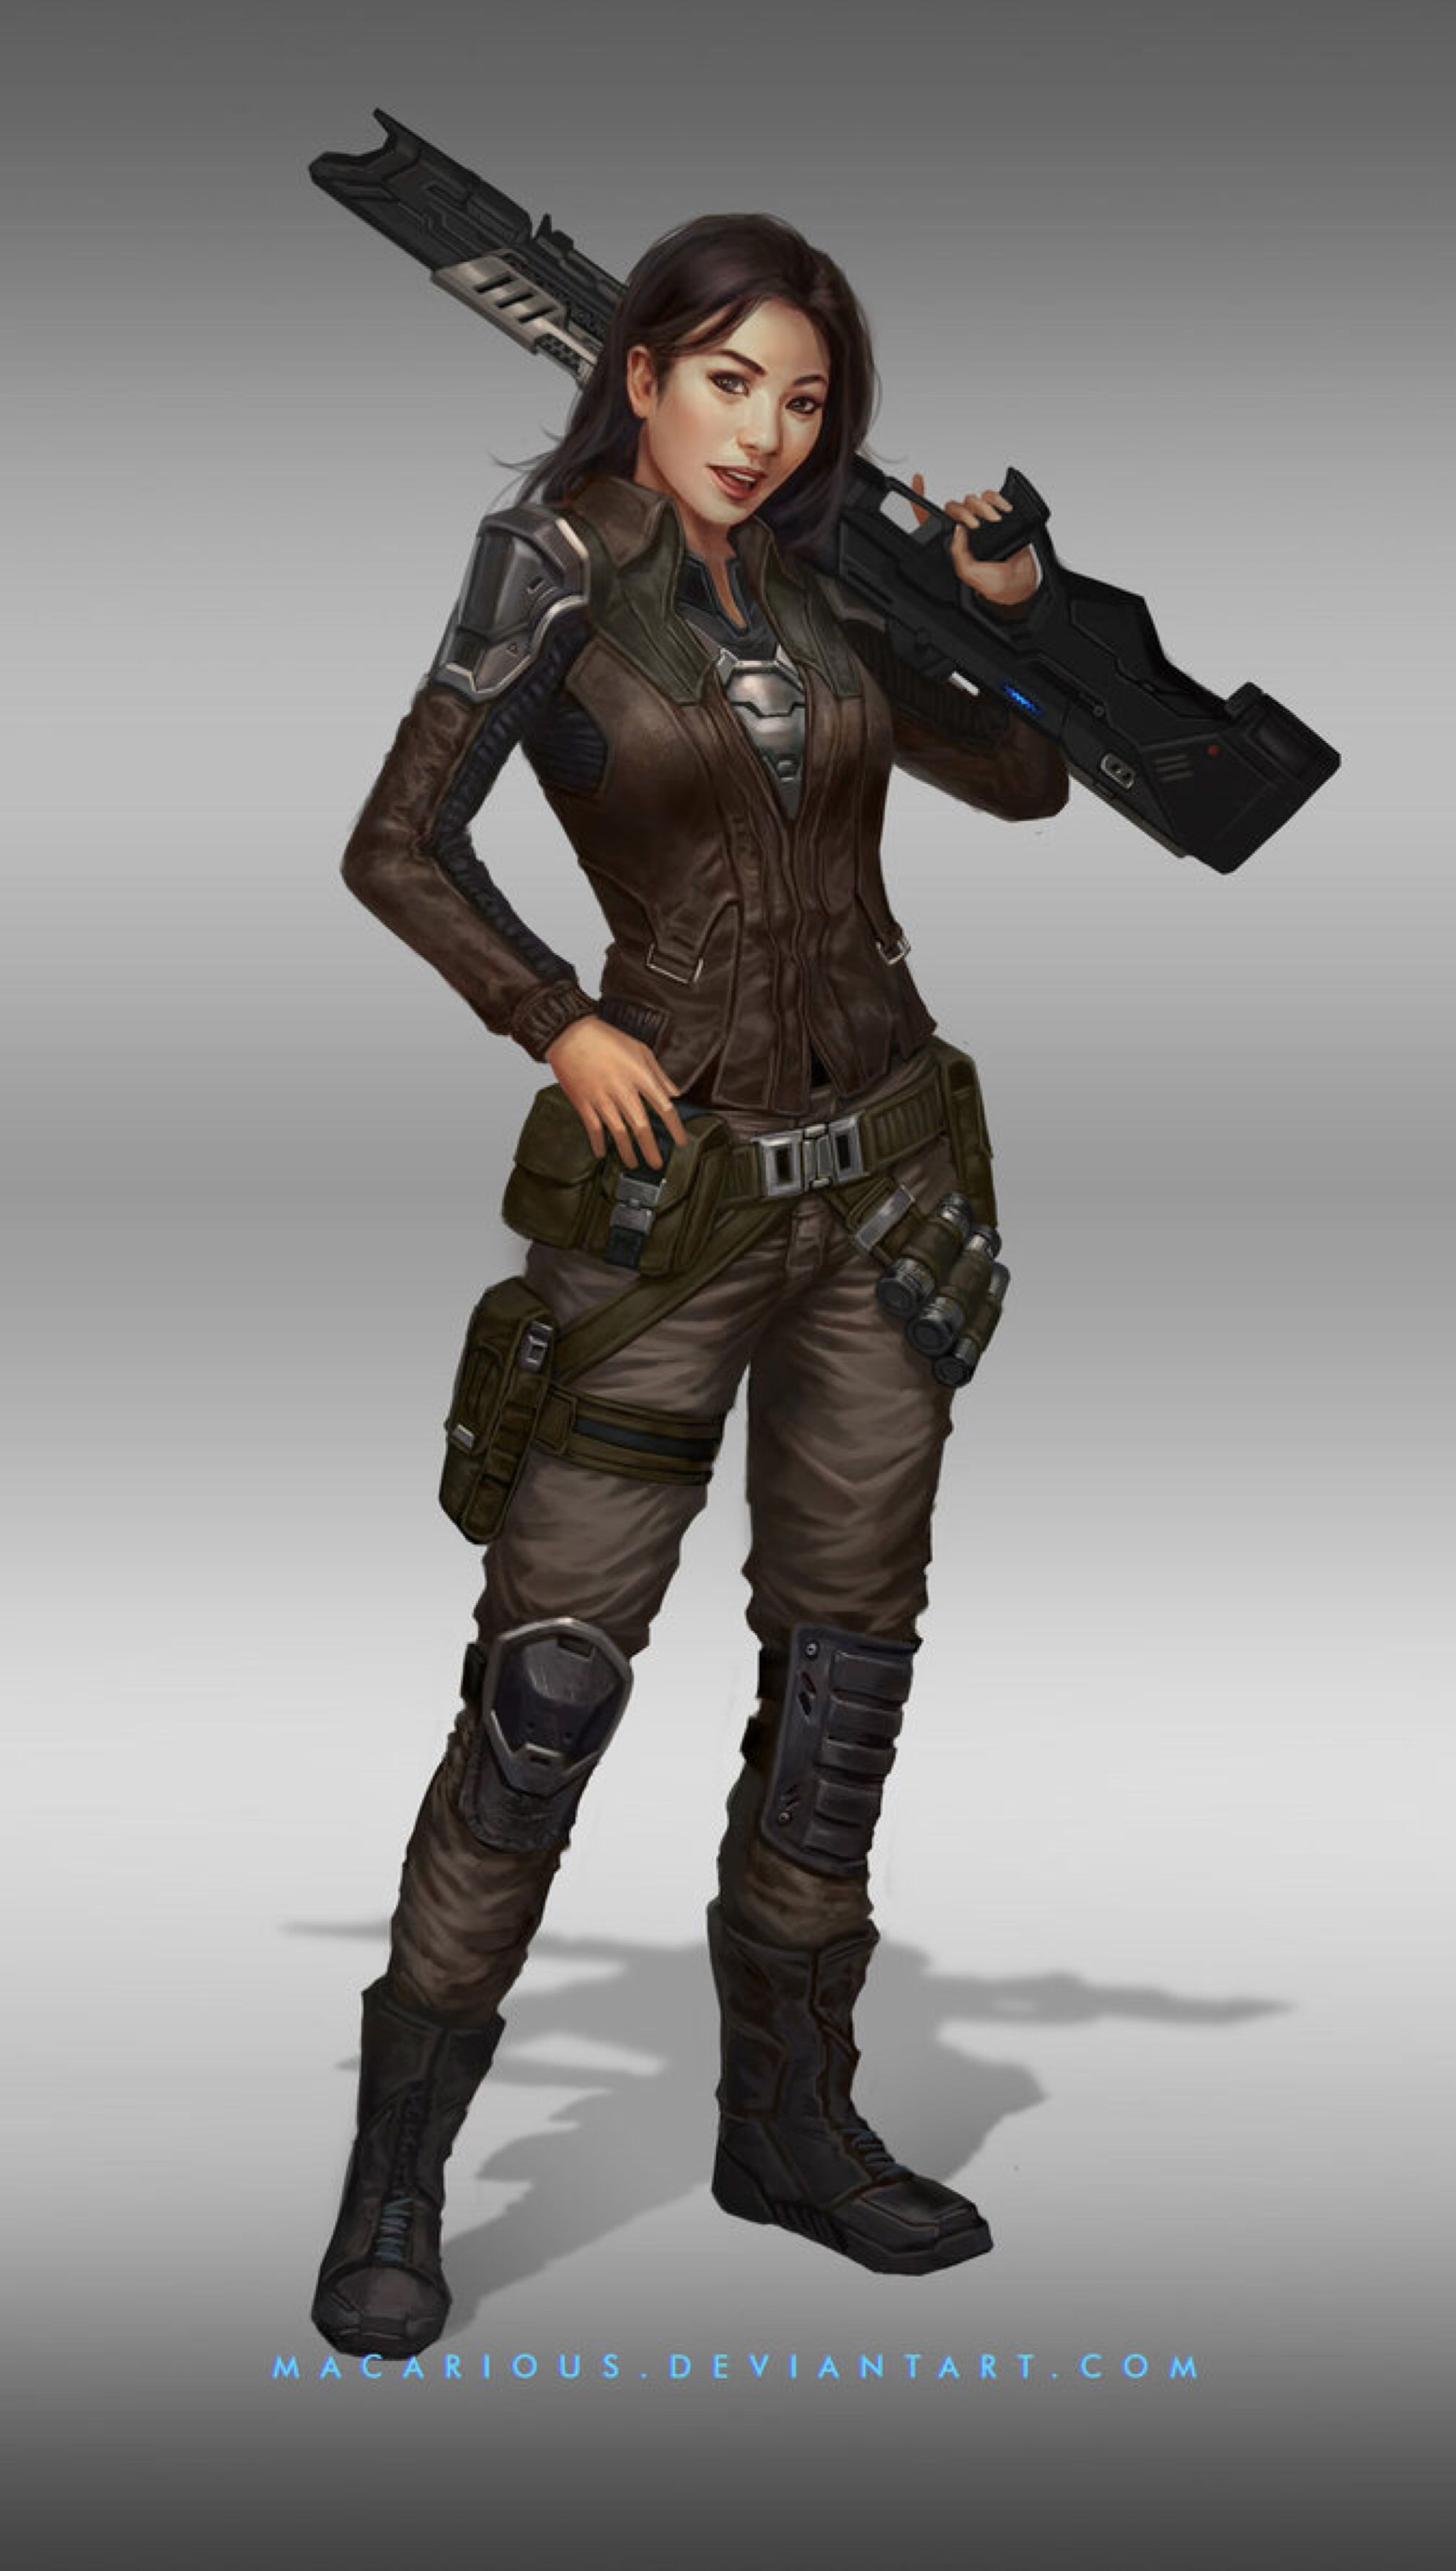 rebellion female soldier : character design by macarious on.